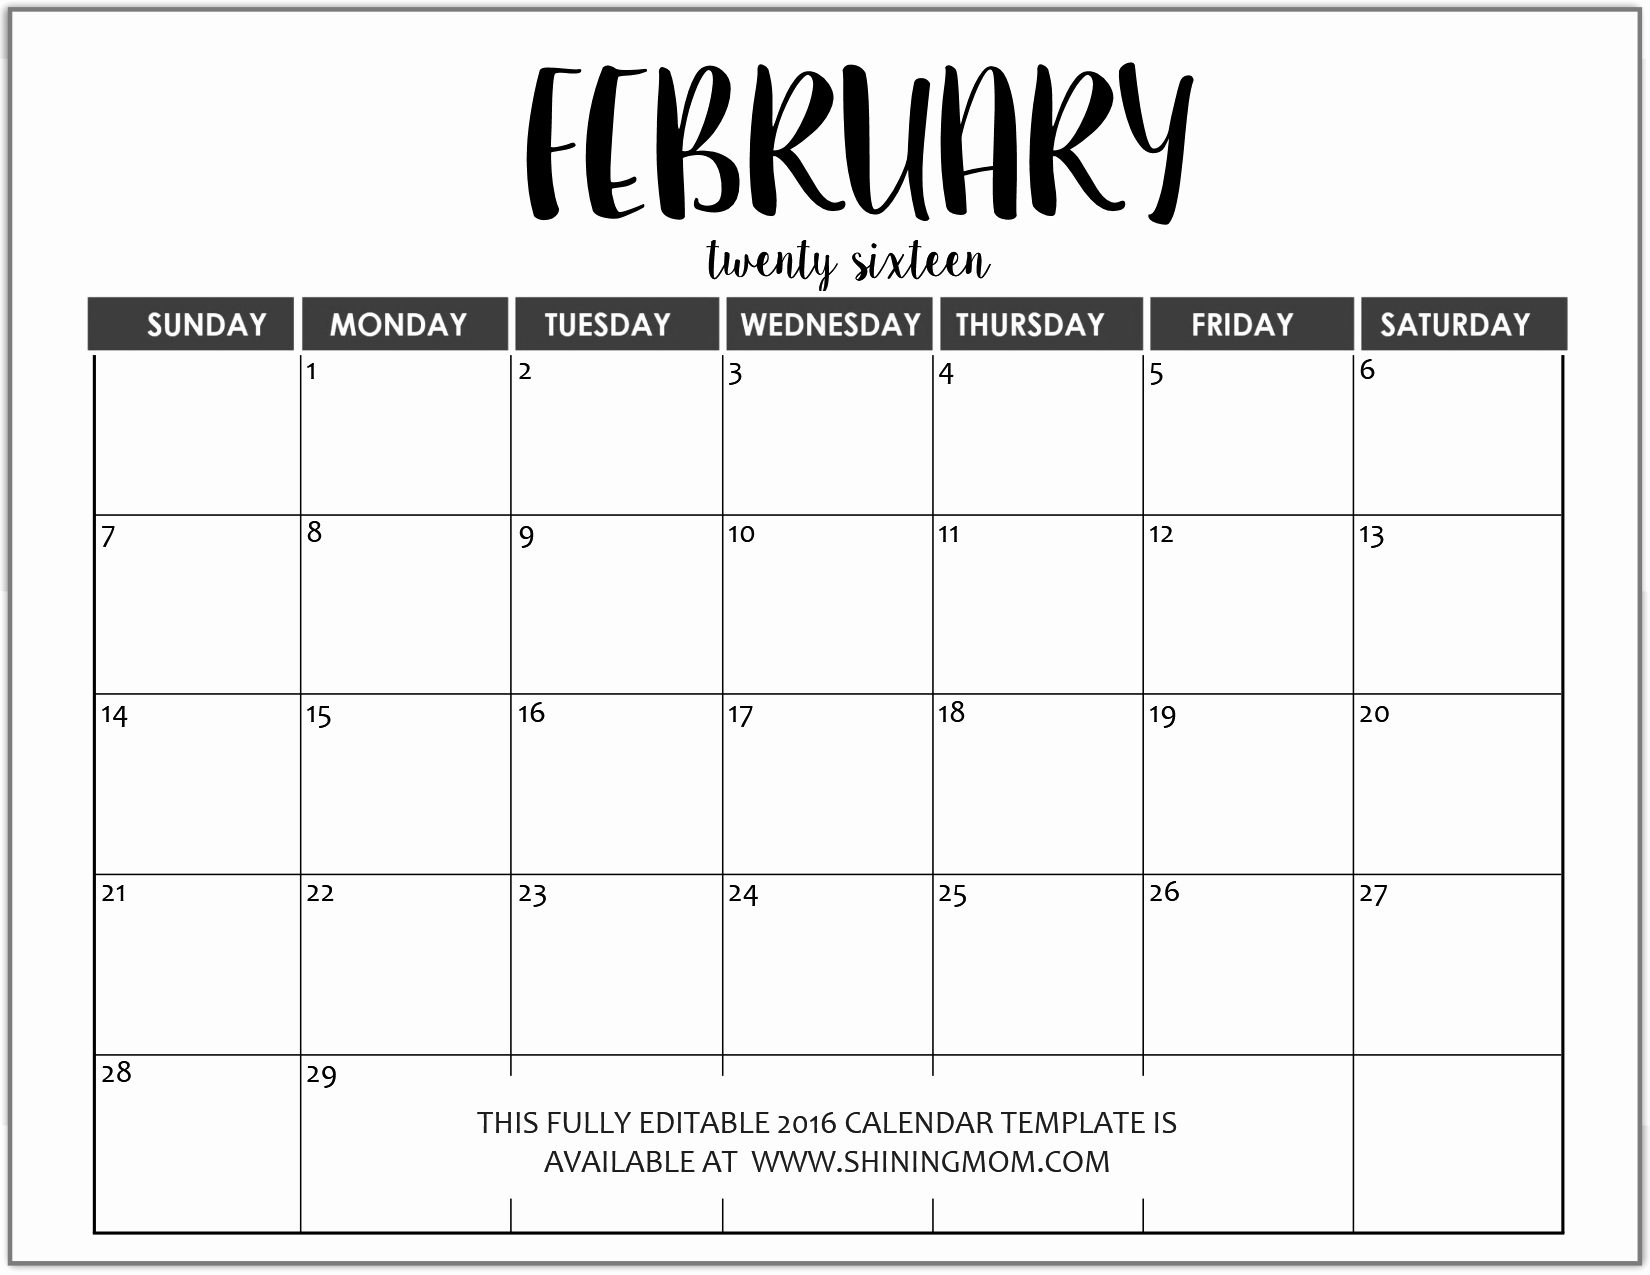 Microsoft Calendar Templates 2019 Luxury Just In Fully Editable 2016 Calendar Templates In Ms Word